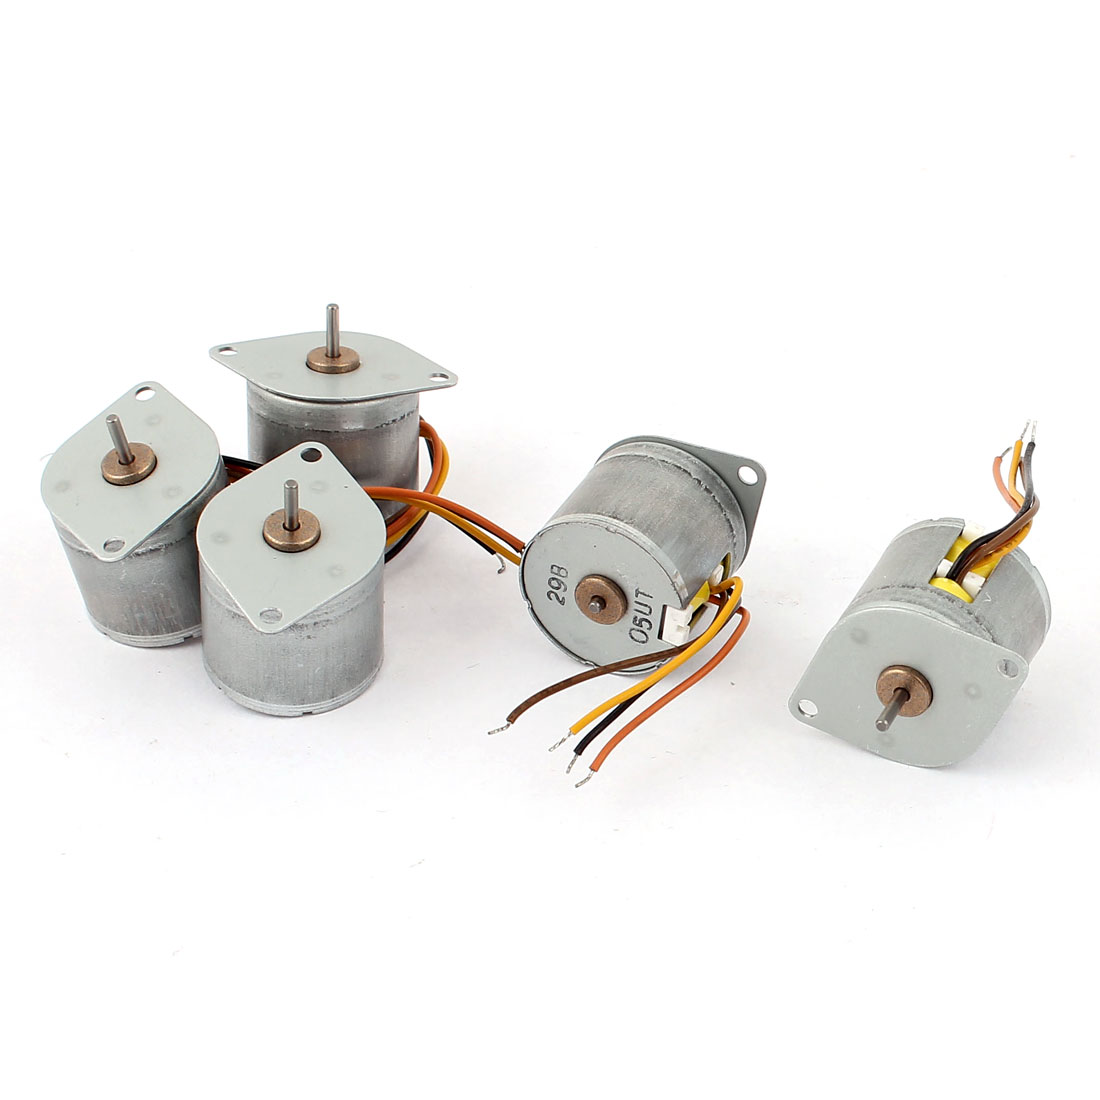 5Pcs DC 6V 20mm Diameter Round Shaped 2 Phase 4 Wire Stepping Motor